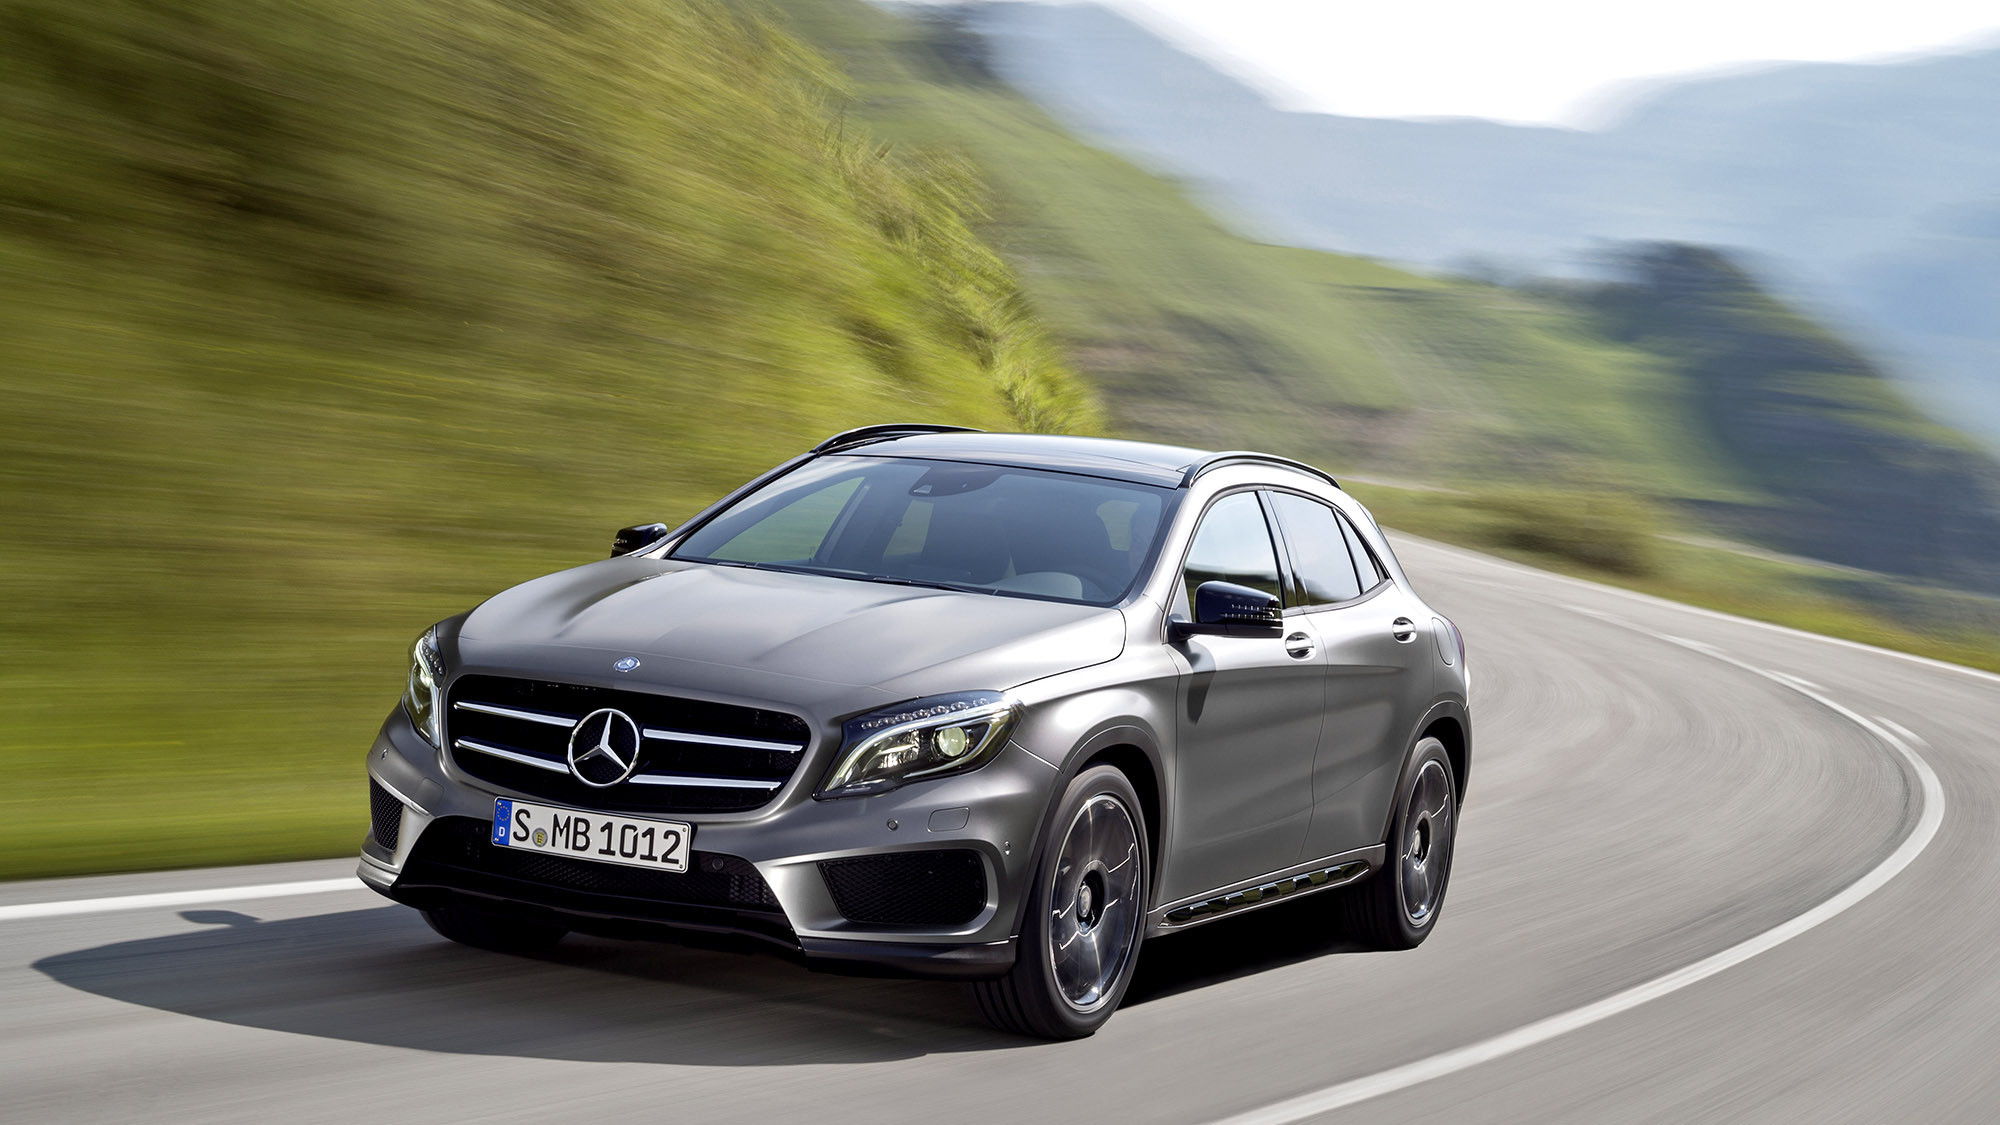 review: mercedes targets new buyers with cute but disappointing